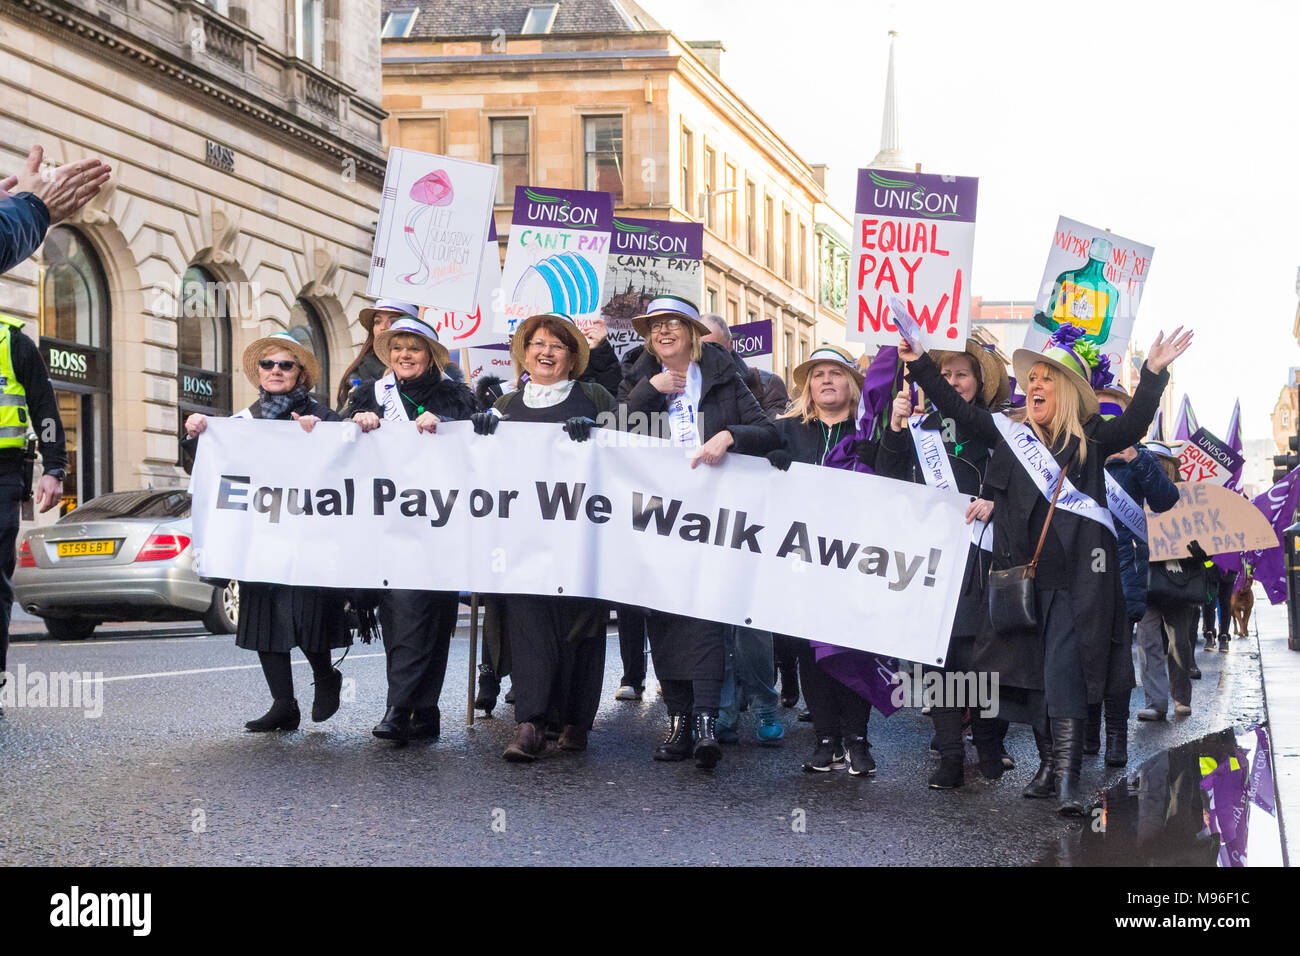 Equal Pay March in Glasgow 2018 - Stock Image